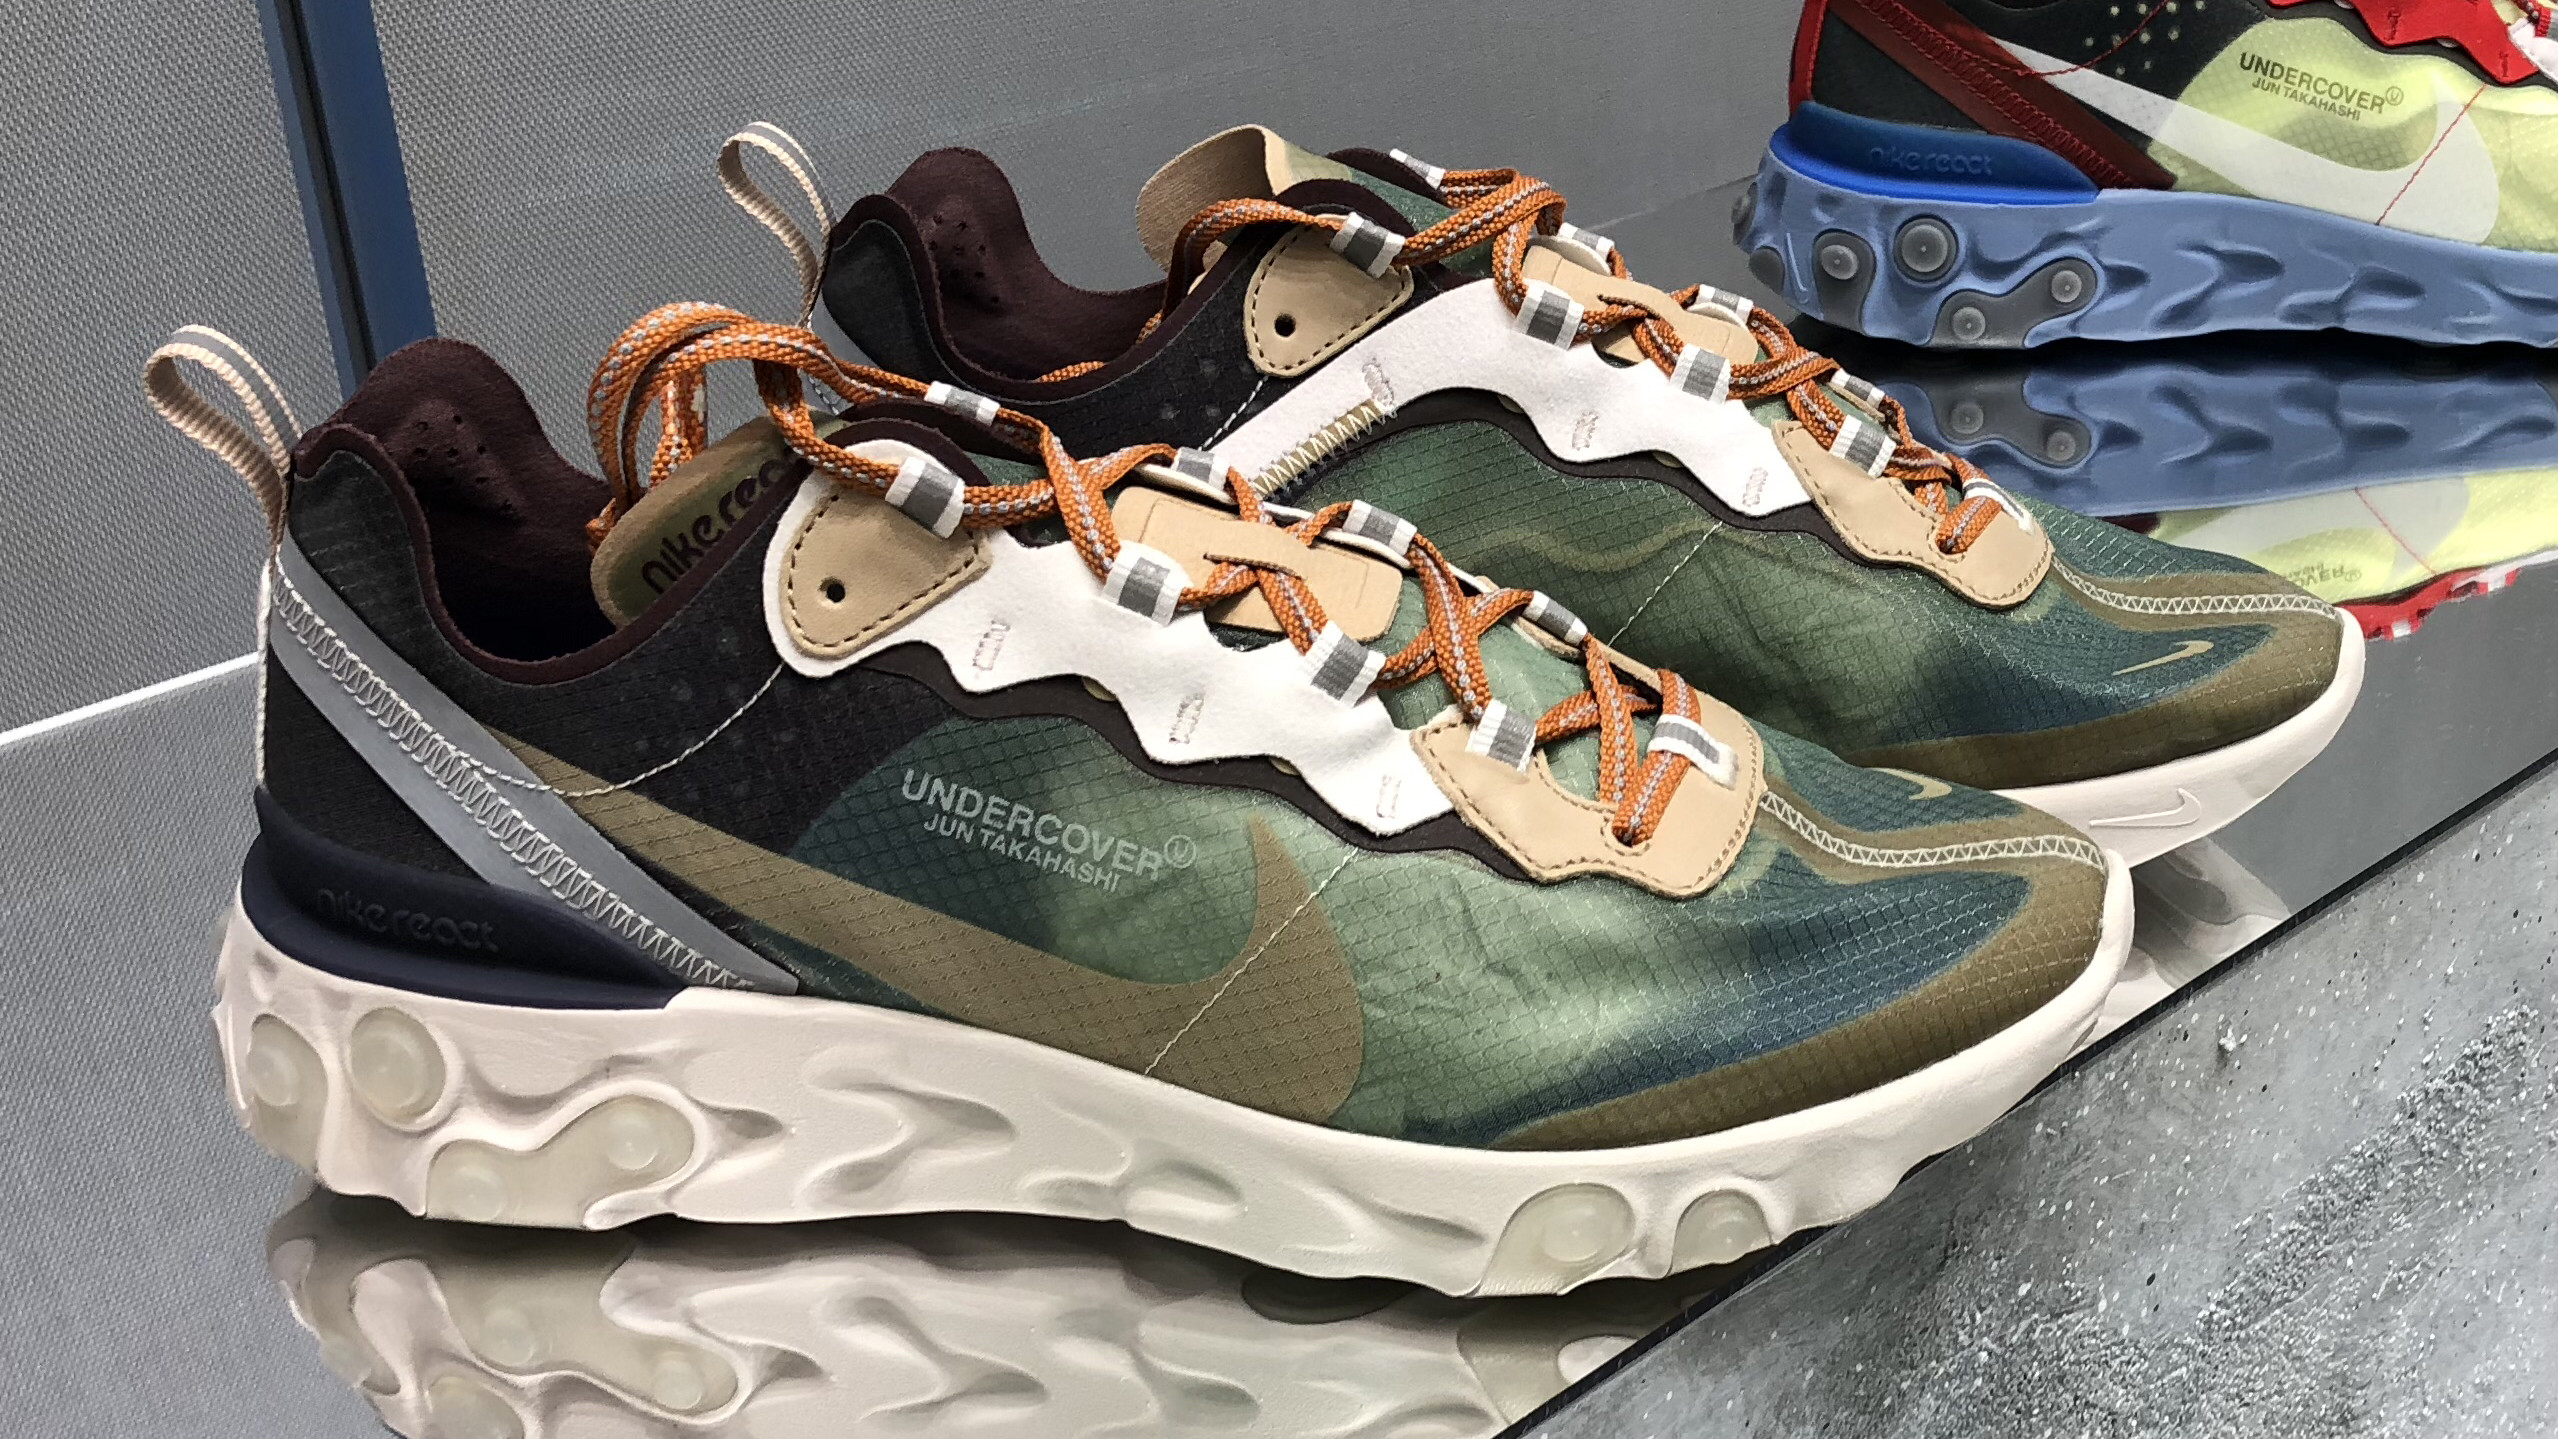 5bf21d9c787e Undercover x Nike React Element 87 New Images